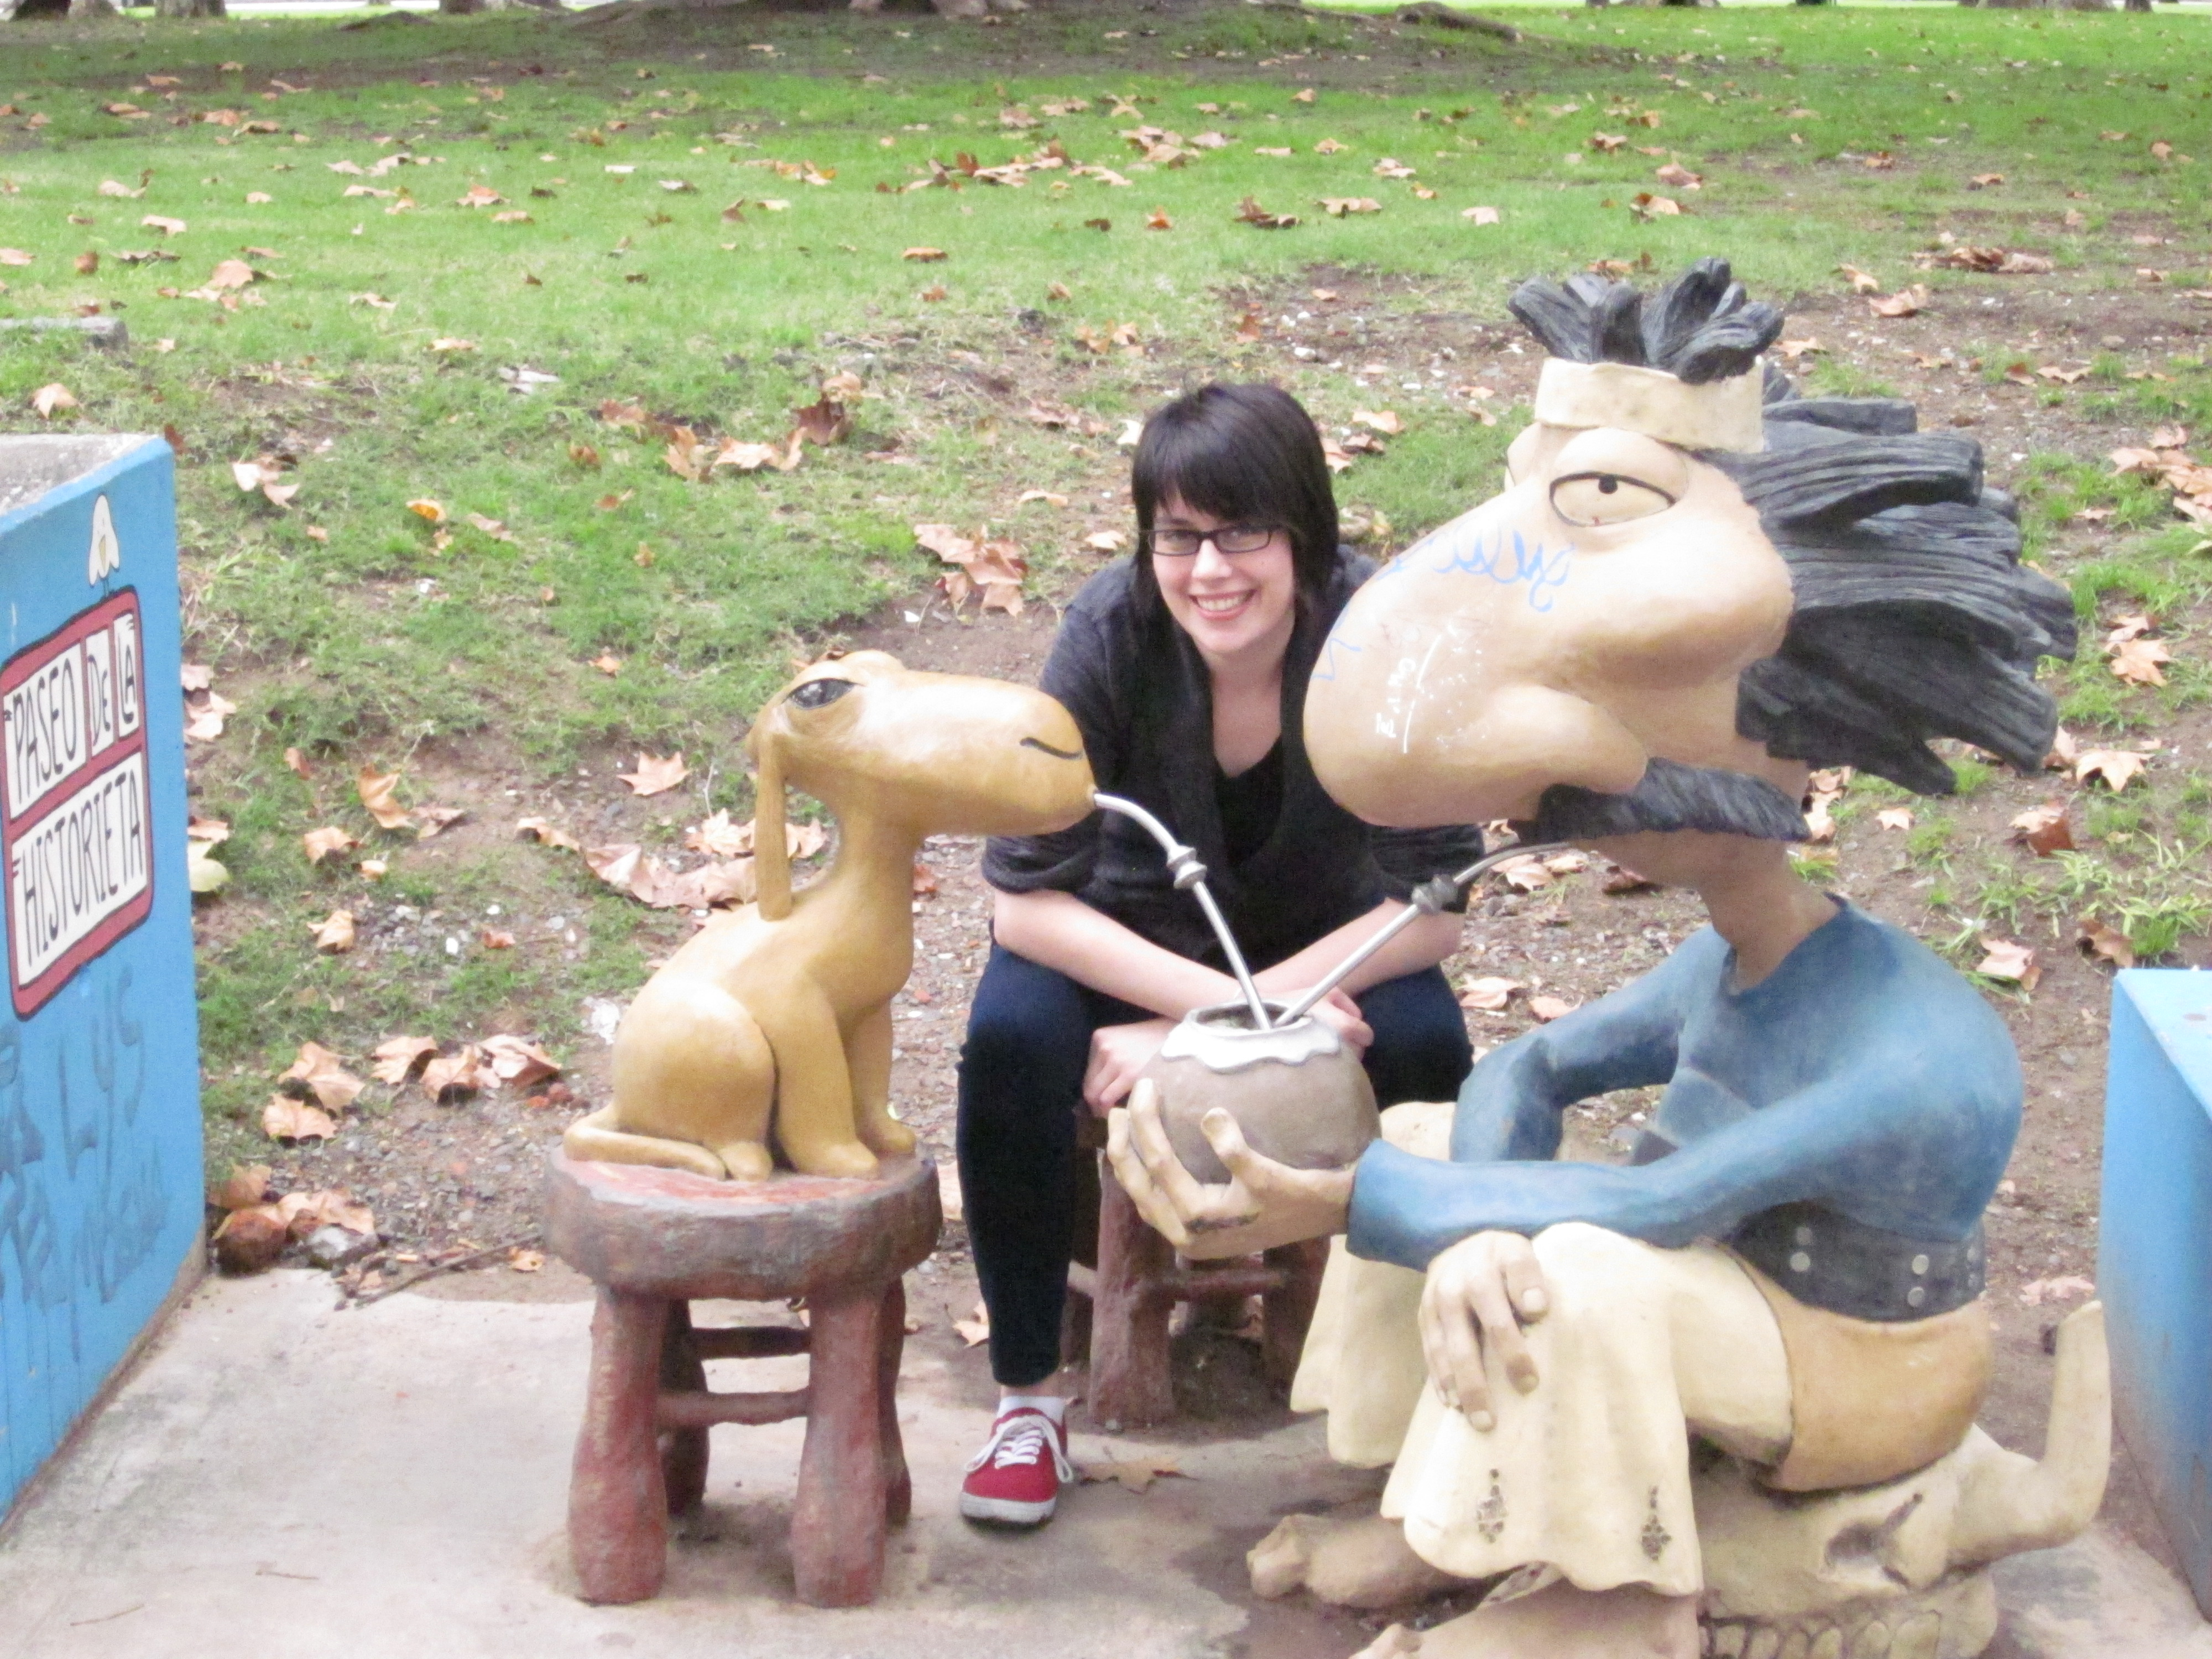 CAPAStudyAbroad_BuenosAires_Spring2016_From_Liz_Hendry_-_Drinking_mate_with_famous_Argentine_cartoon_characters.jpg